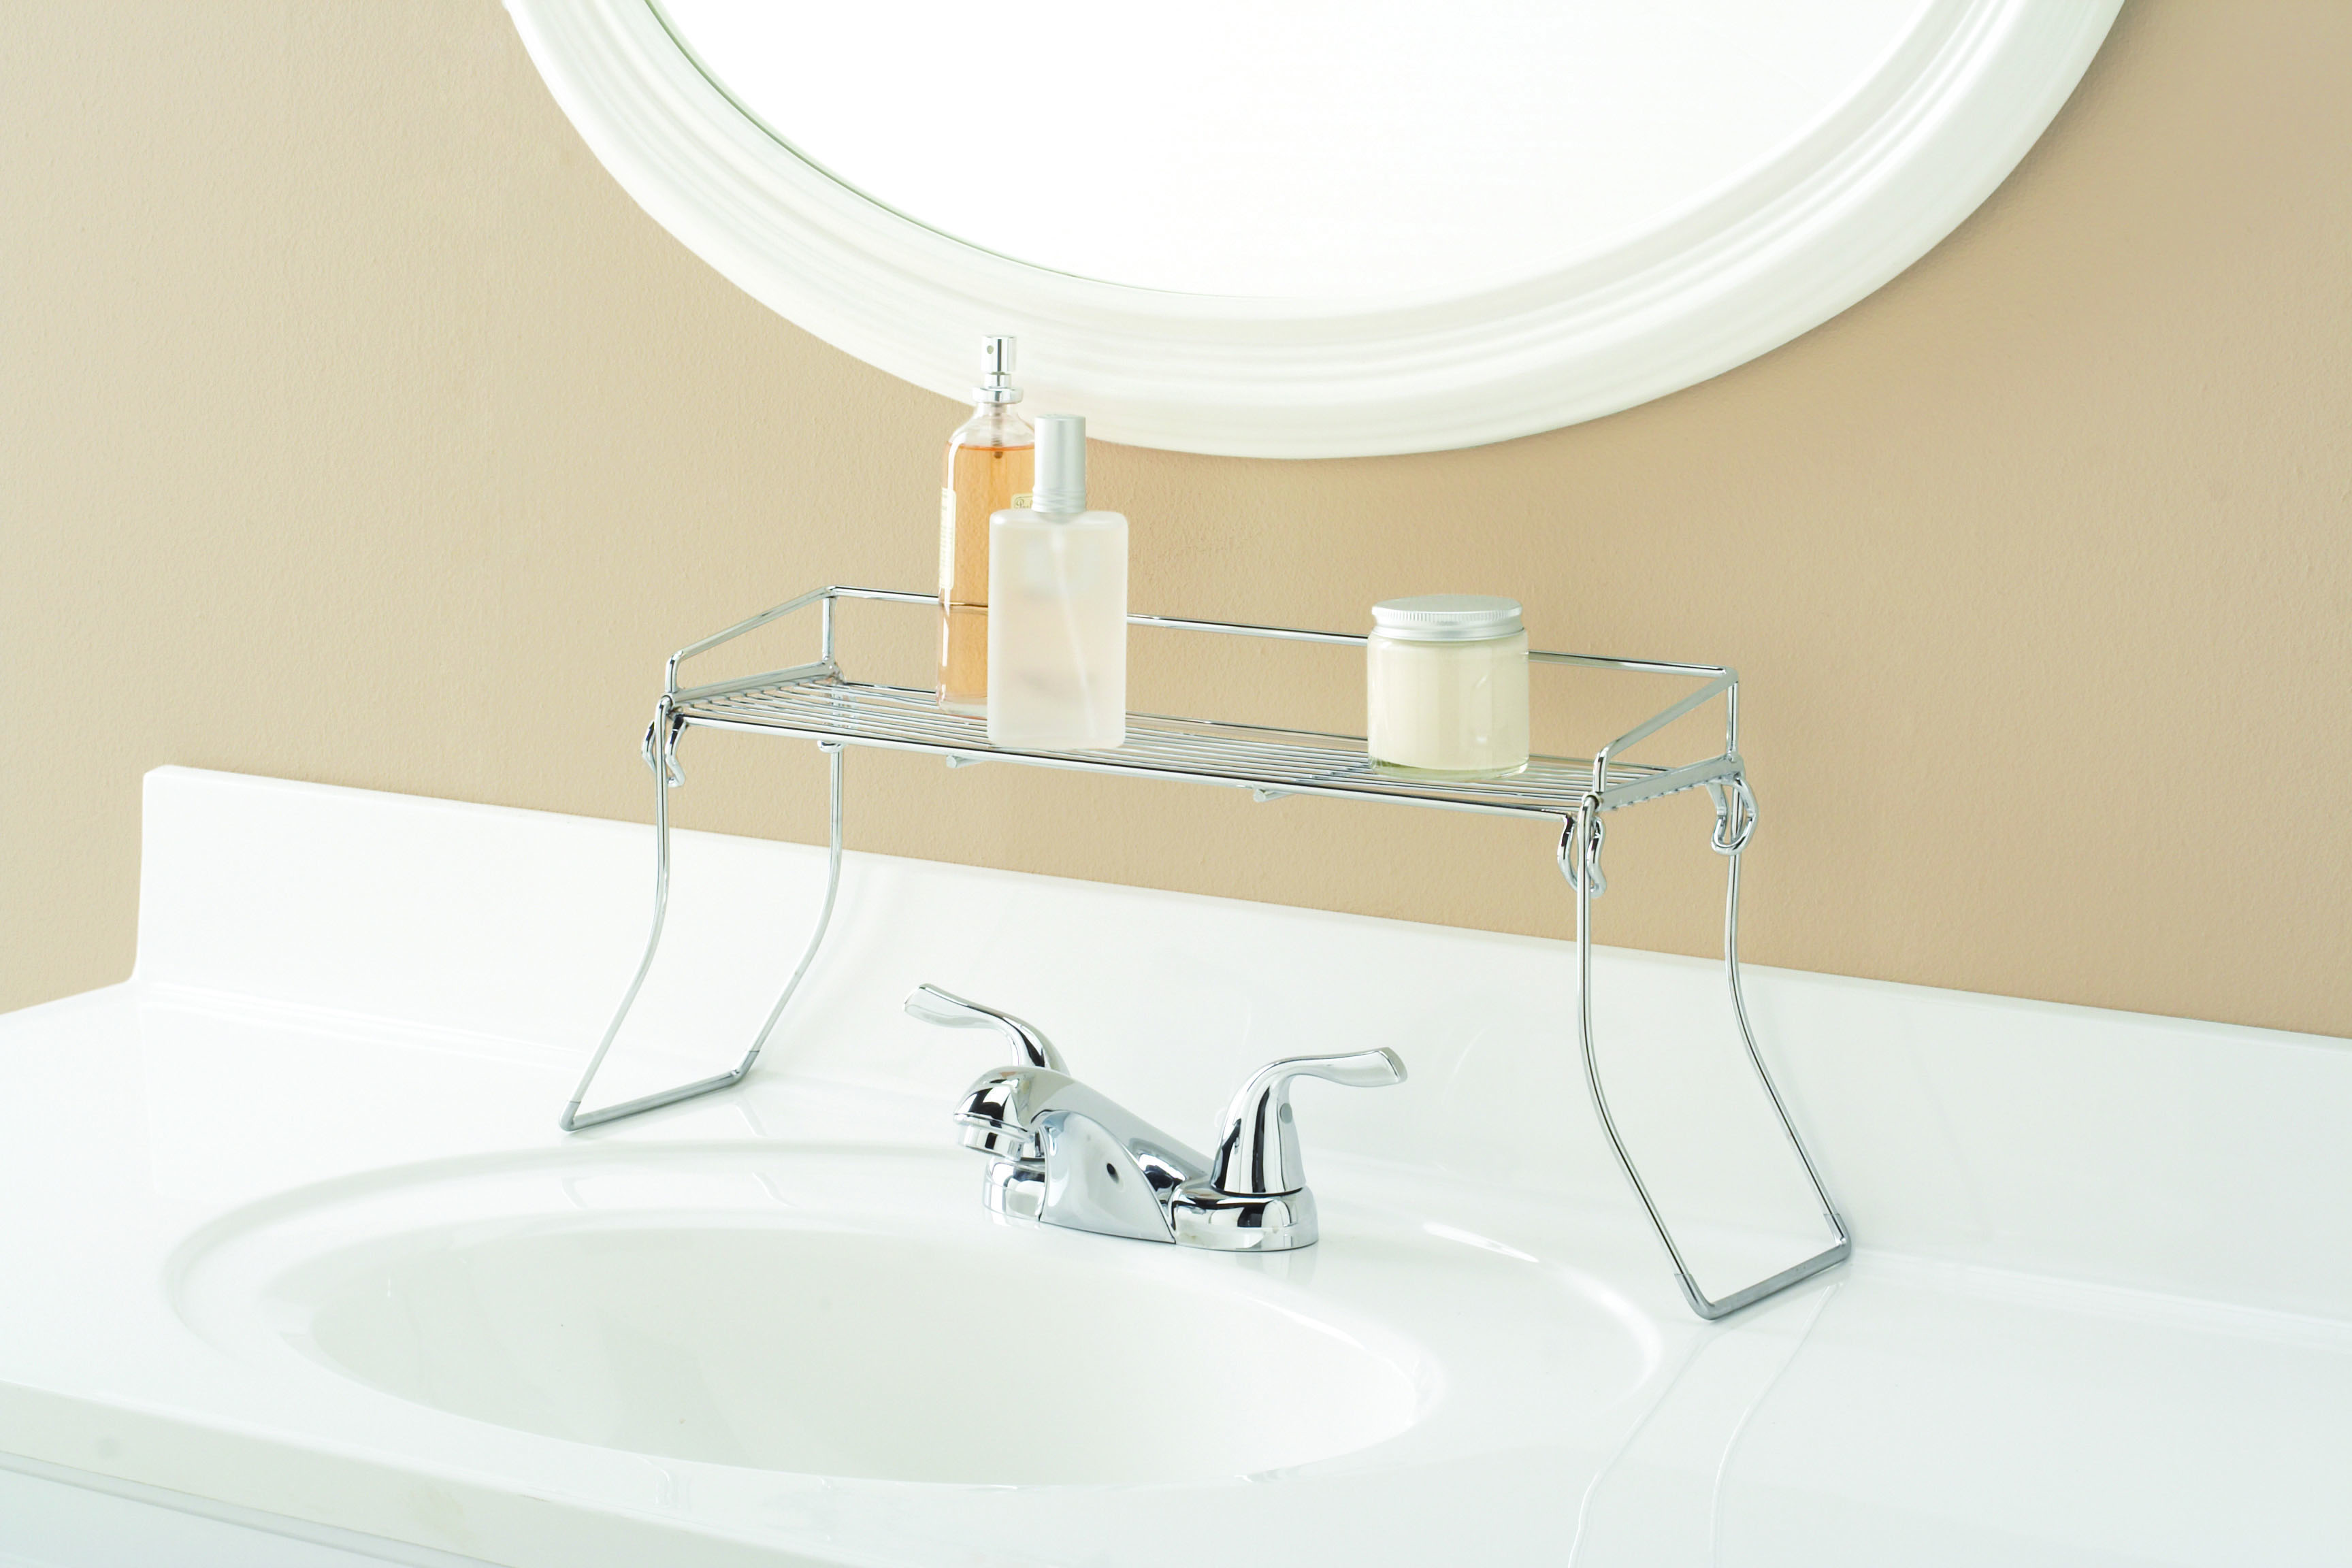 Sink Bathroom Metal Shelf